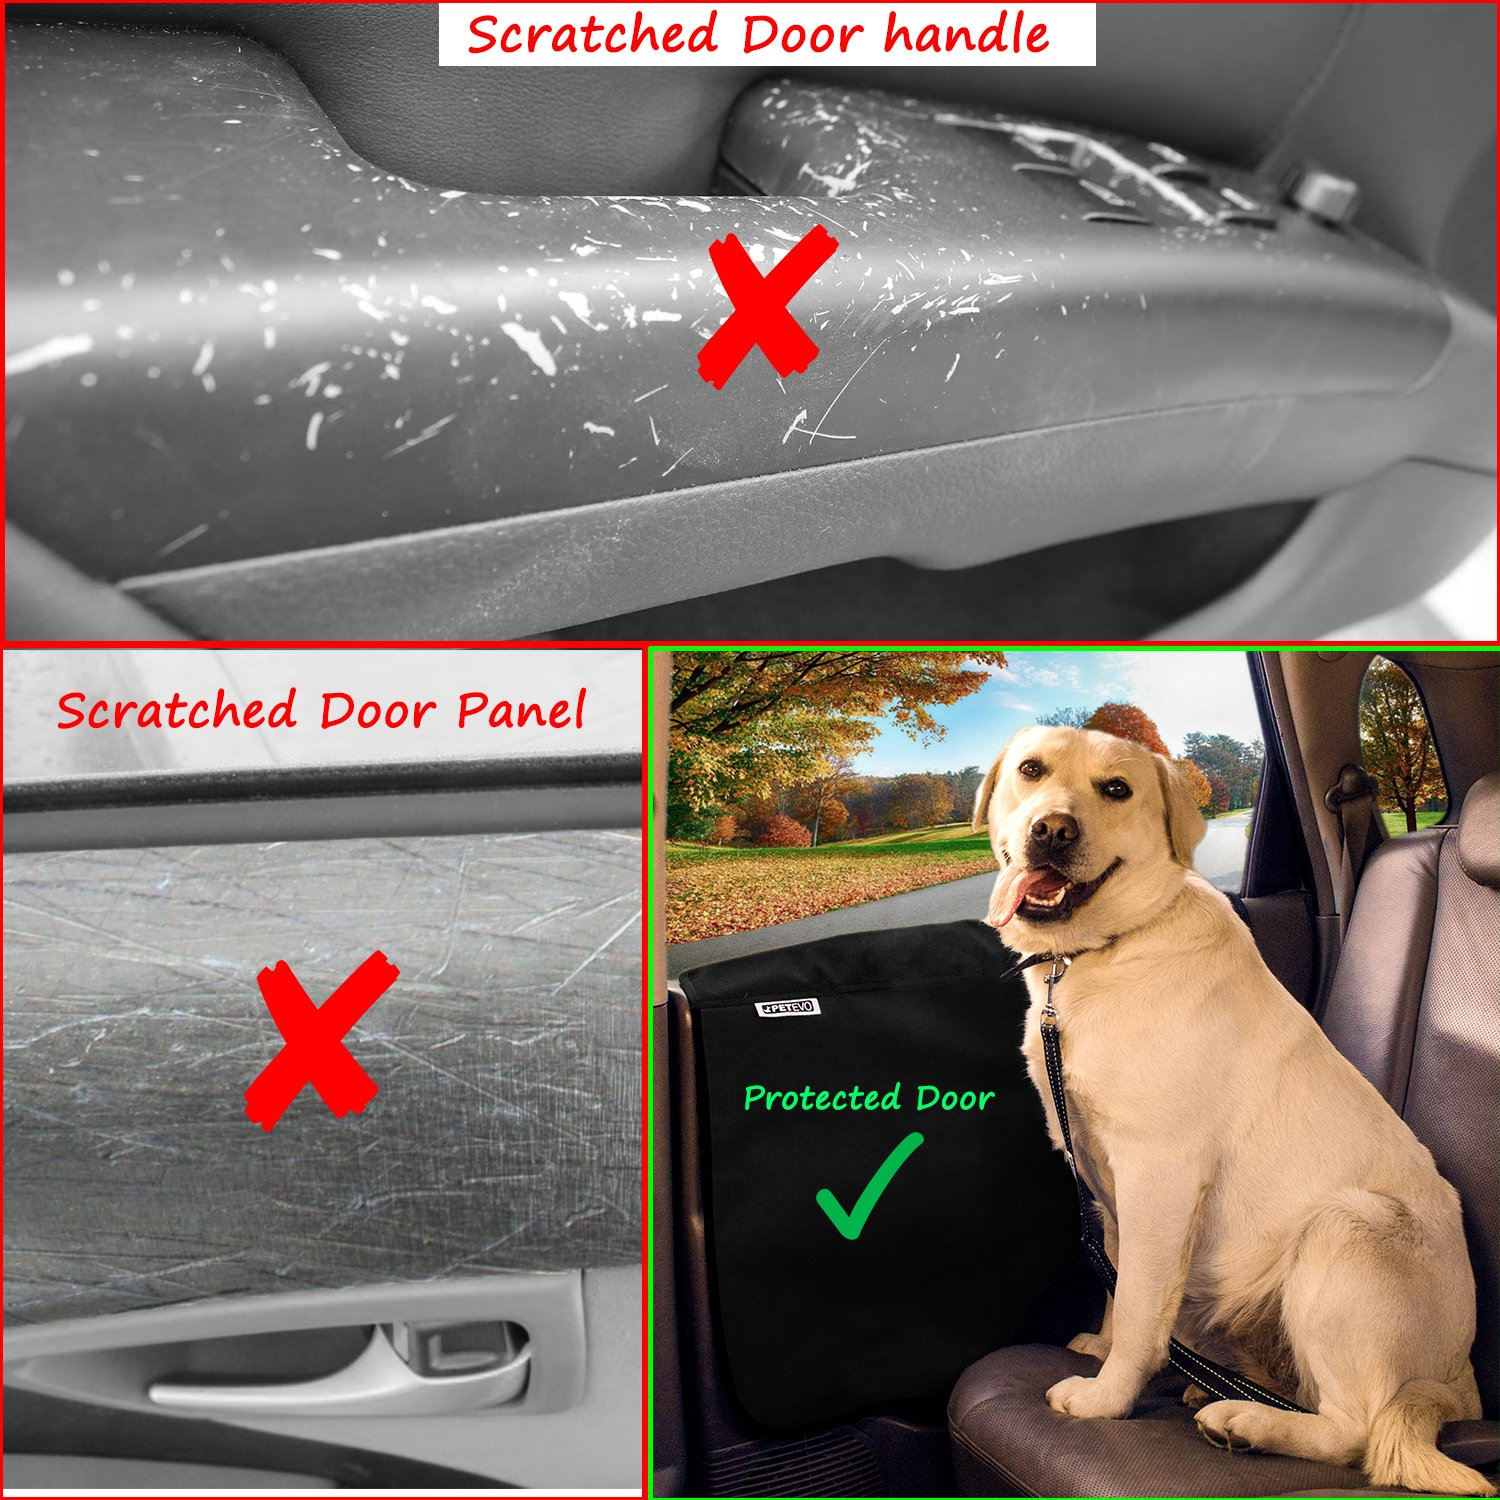 Pet Car Door Protector for Dogs   Interior Cover Guard Vehicle Back Door Protection from Pets Scratch Drooling Nails Large Safe No Slip Velcro Stick for Side Doors PetEvo by PetEvo (Image #2)